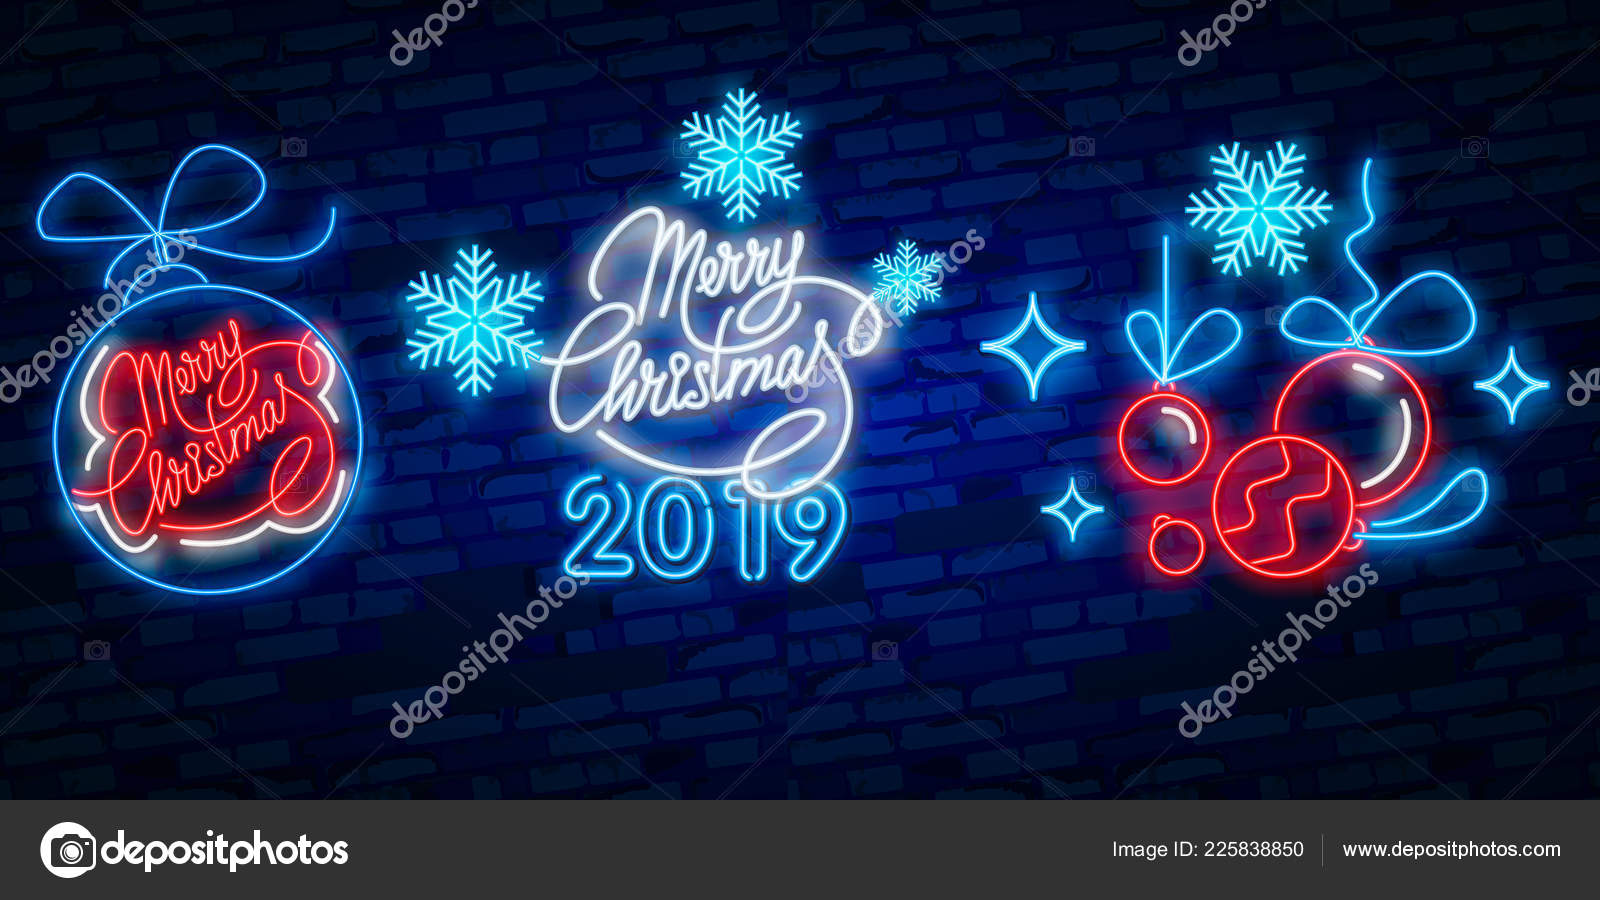 depositphotos 225838850 stock illustration merry christmas and 2019 happy